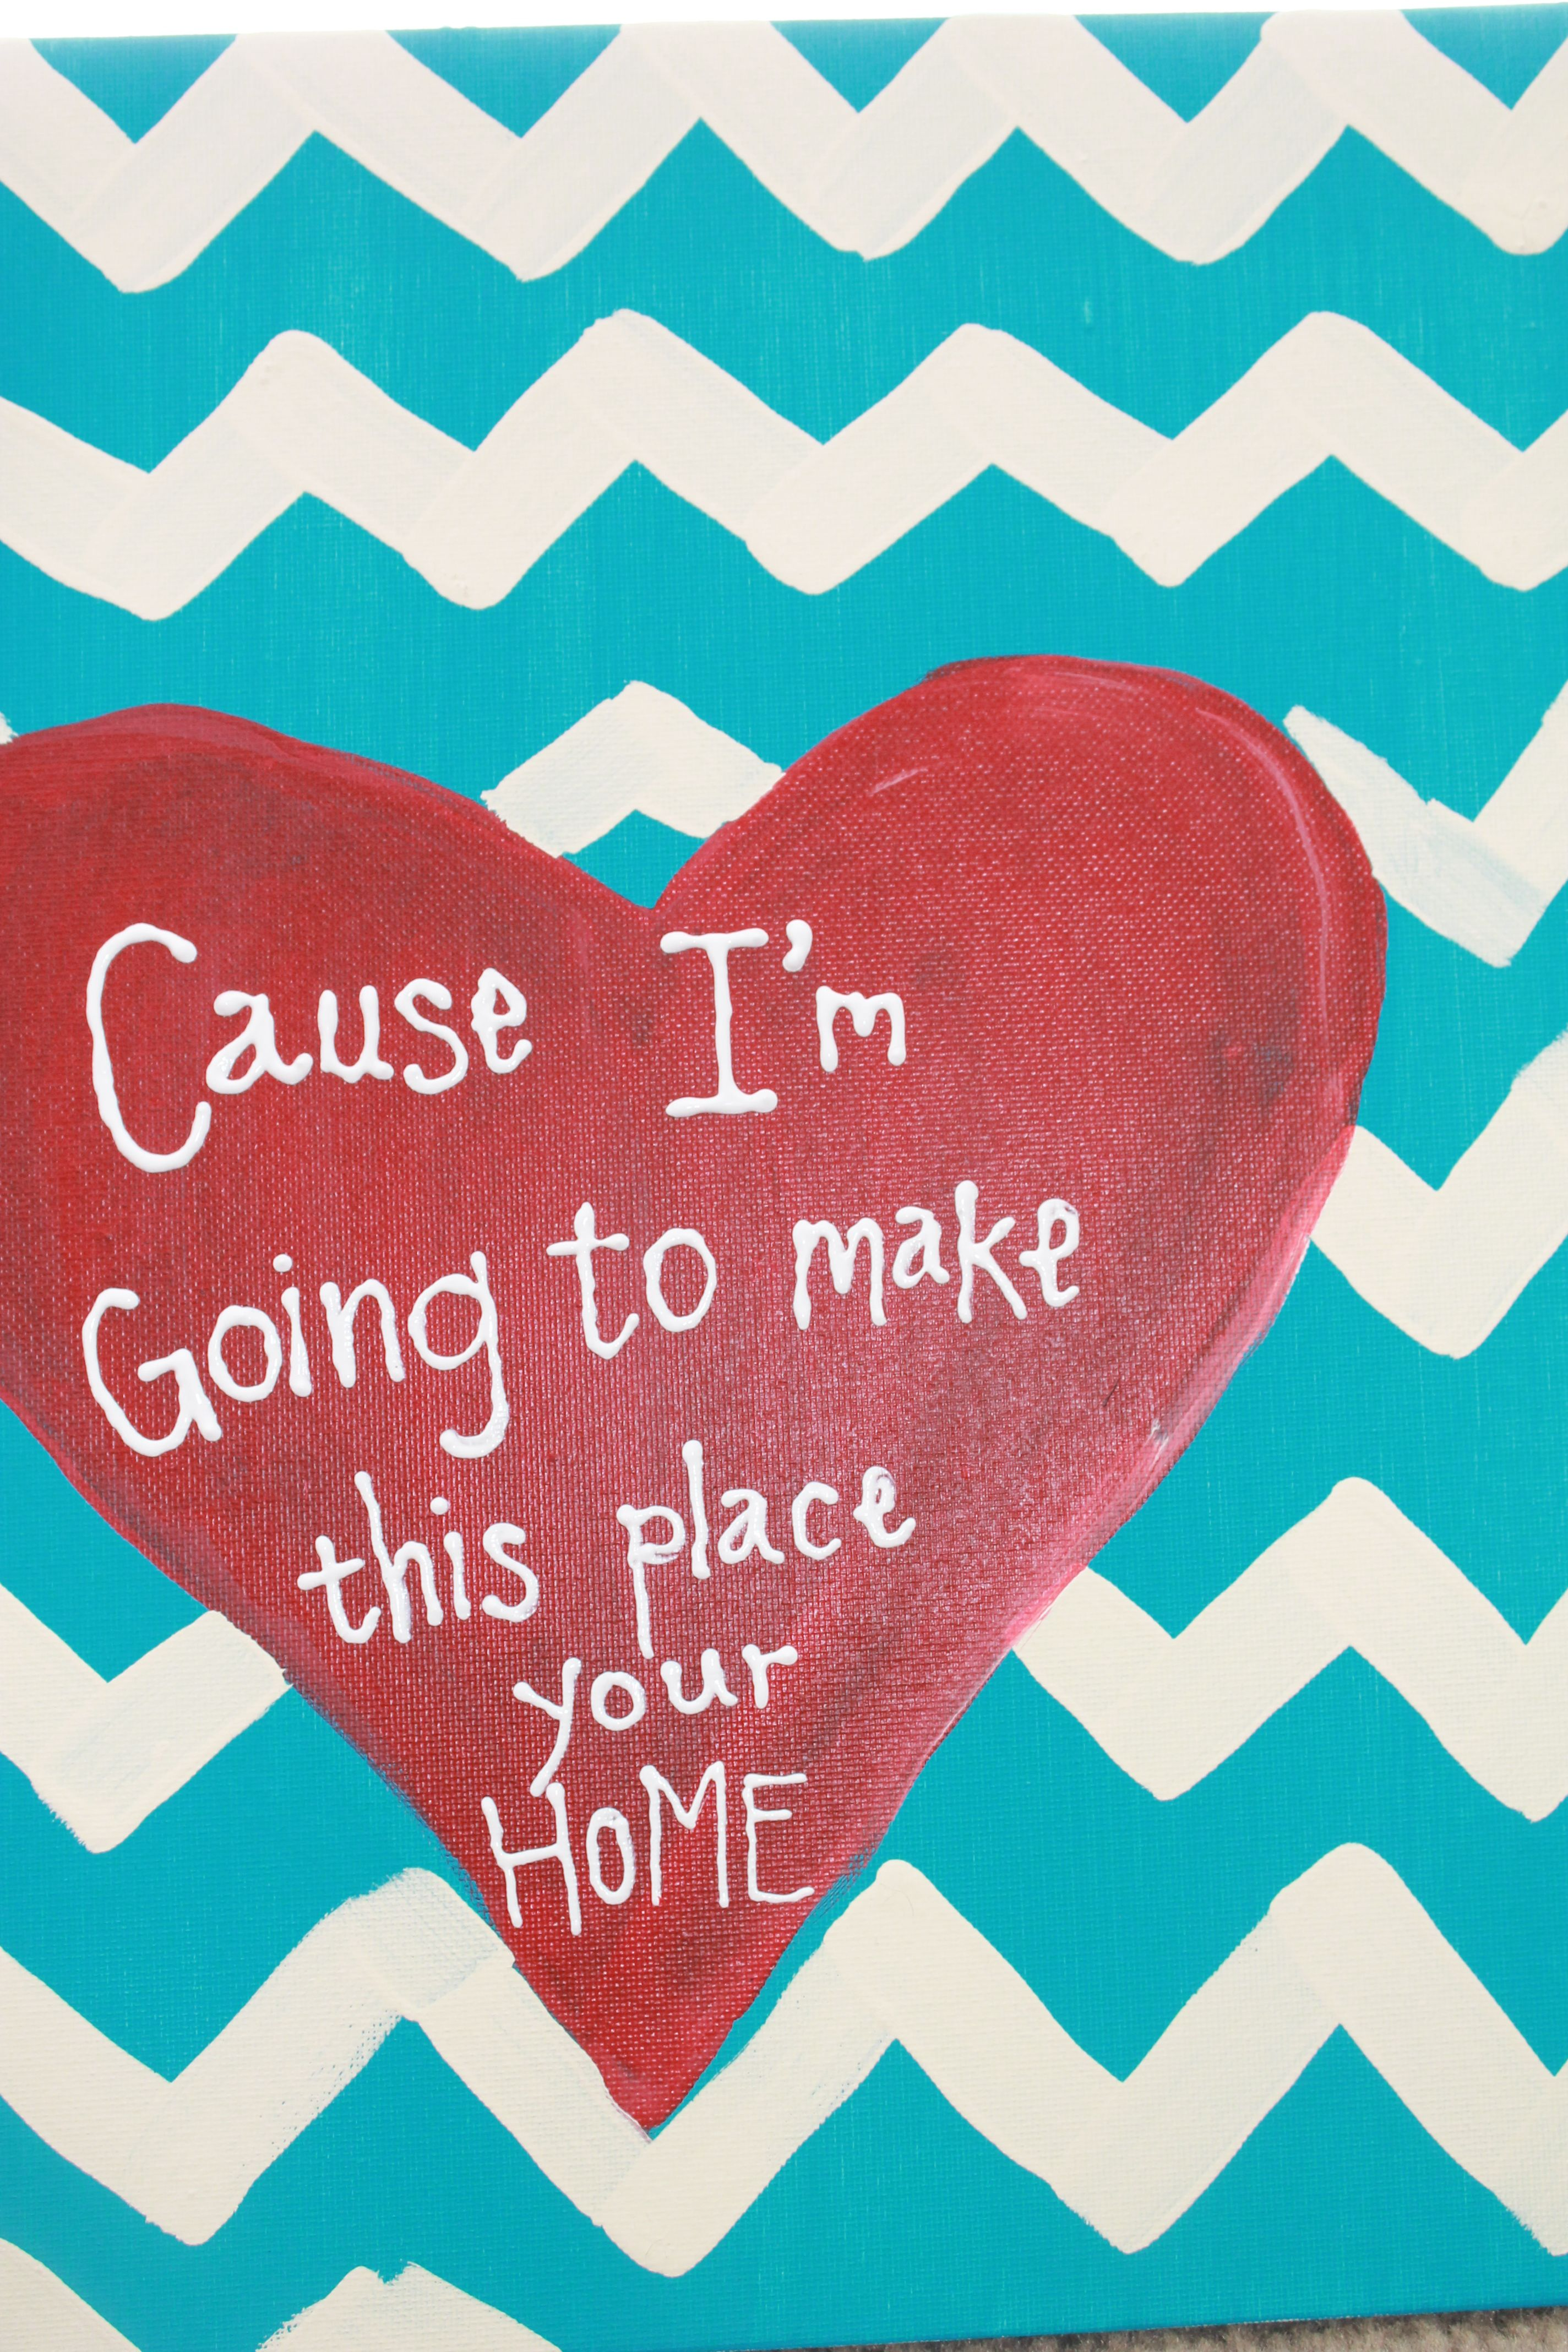 Home By Phillip Phillips Lyrics And Song